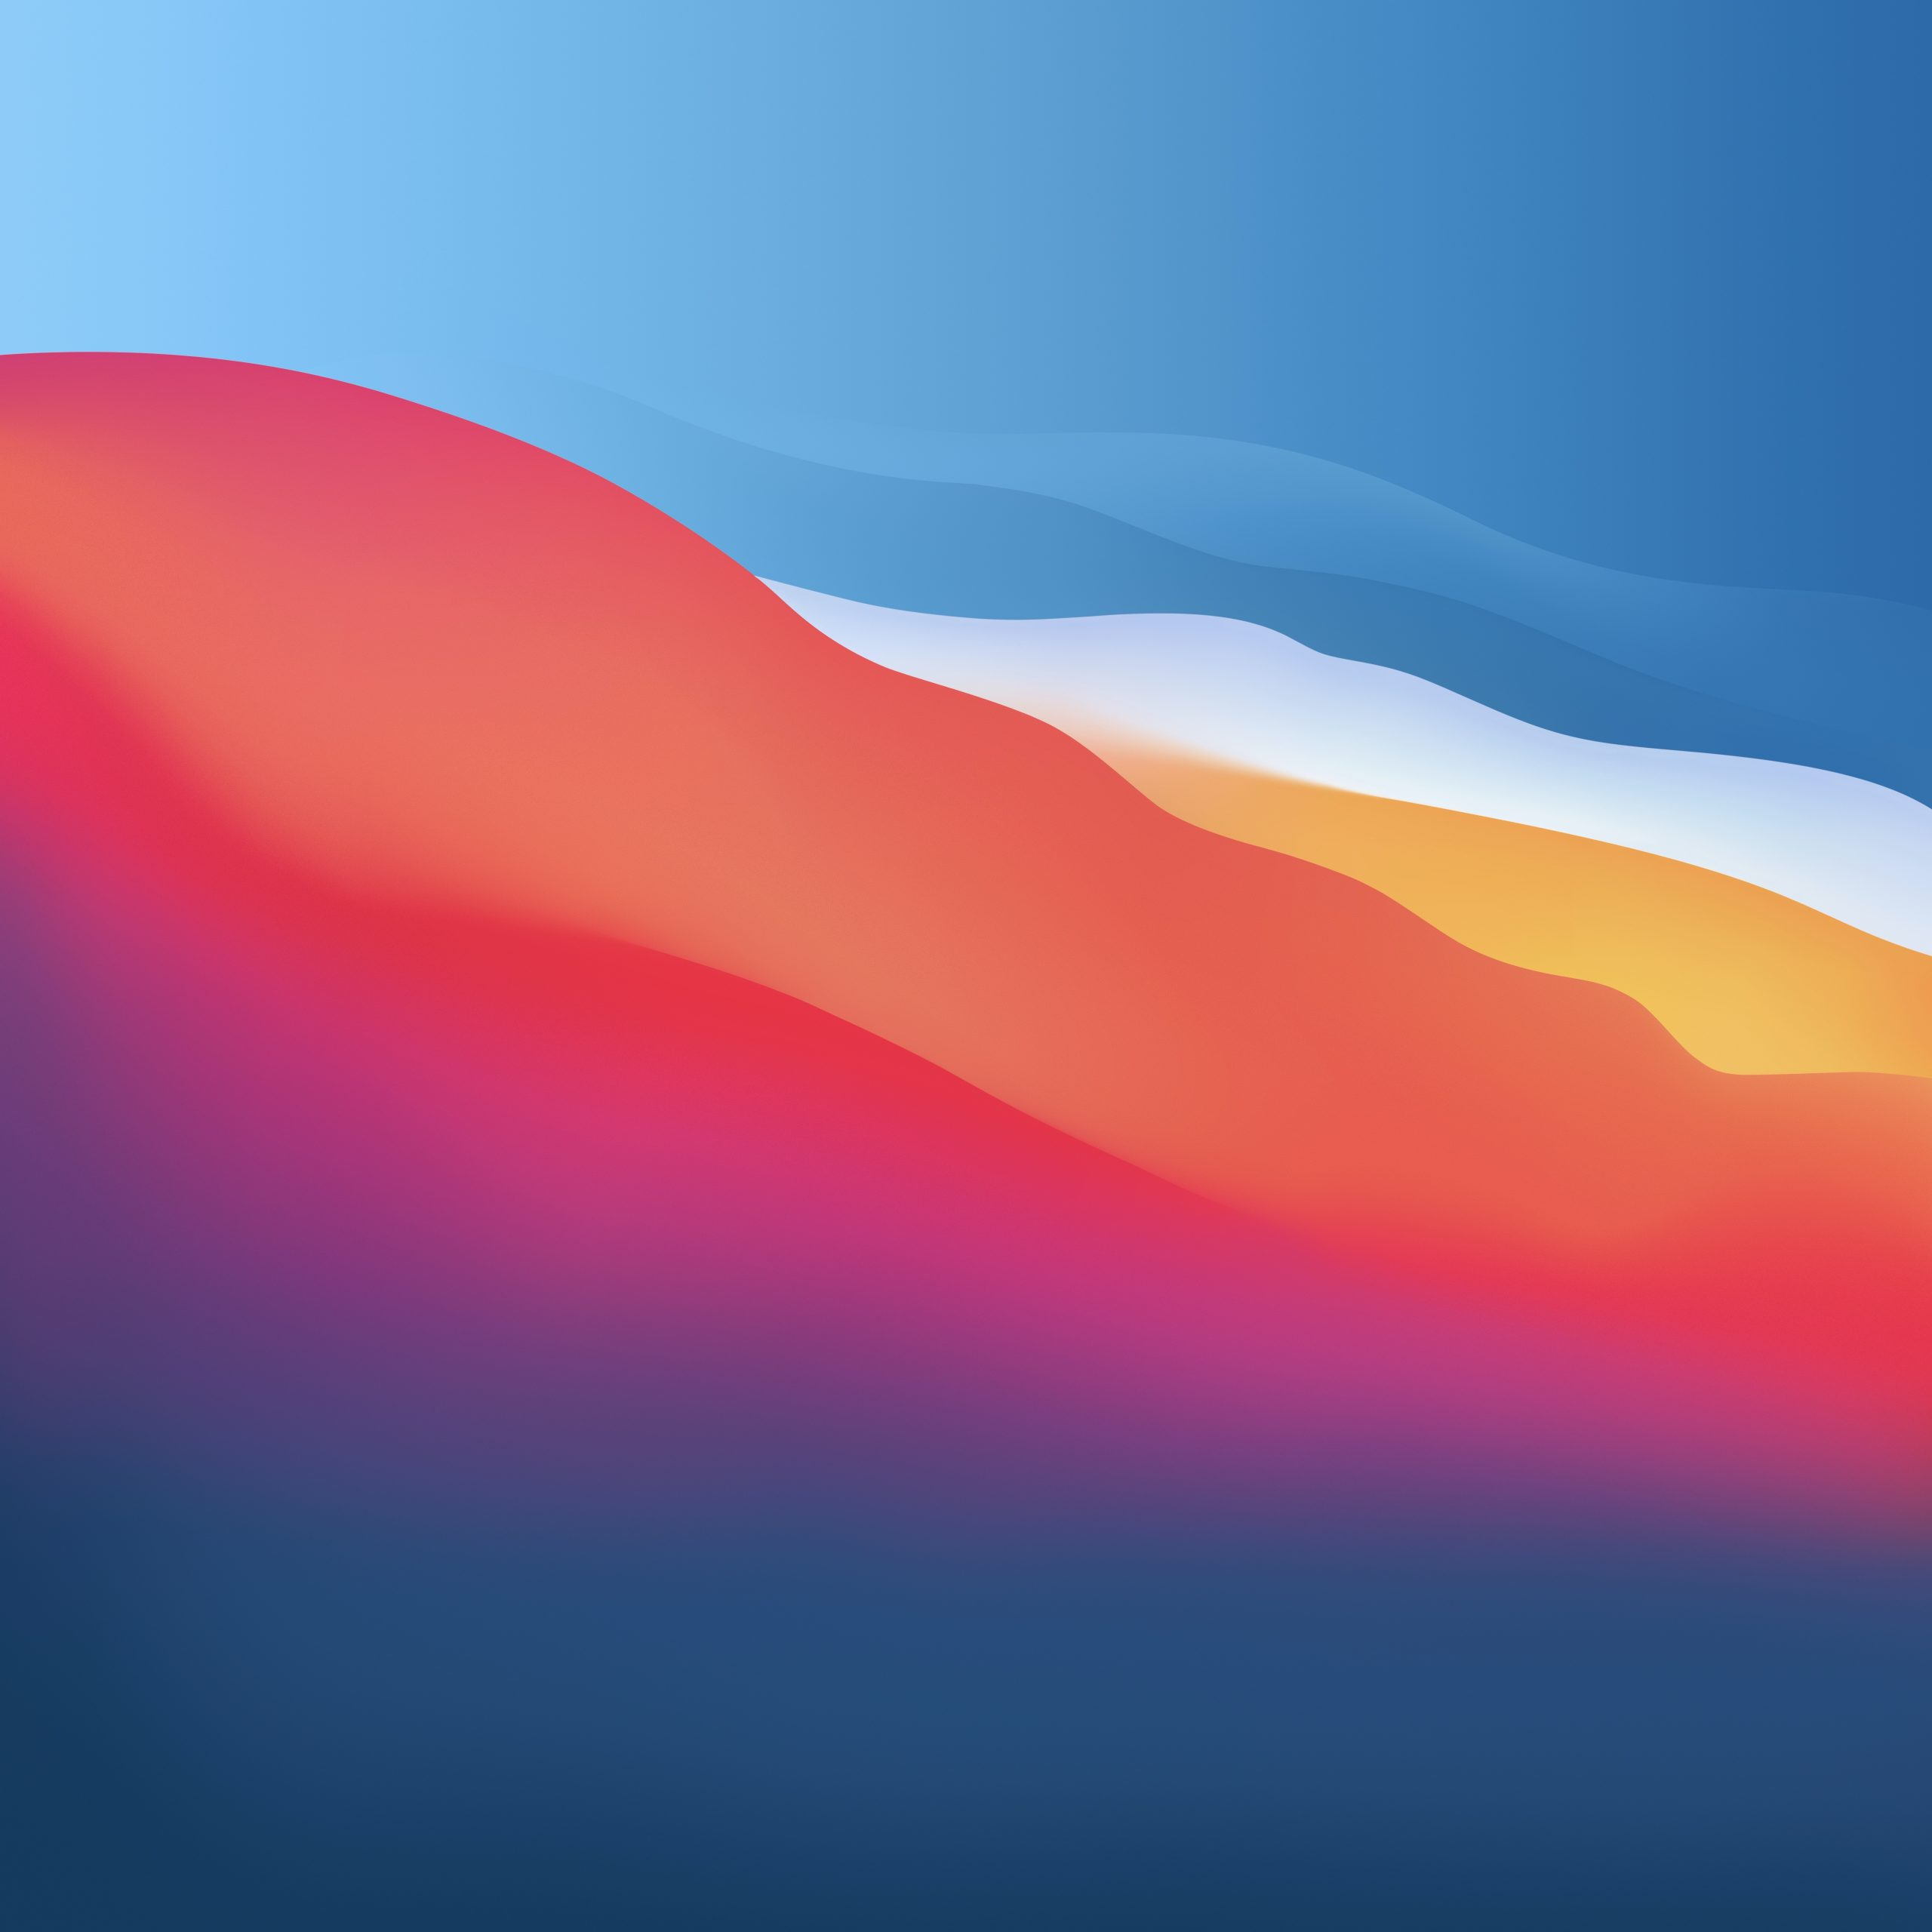 Download Macos Big Sur Wallpapers For Your Mac And Iphone Applemagazine